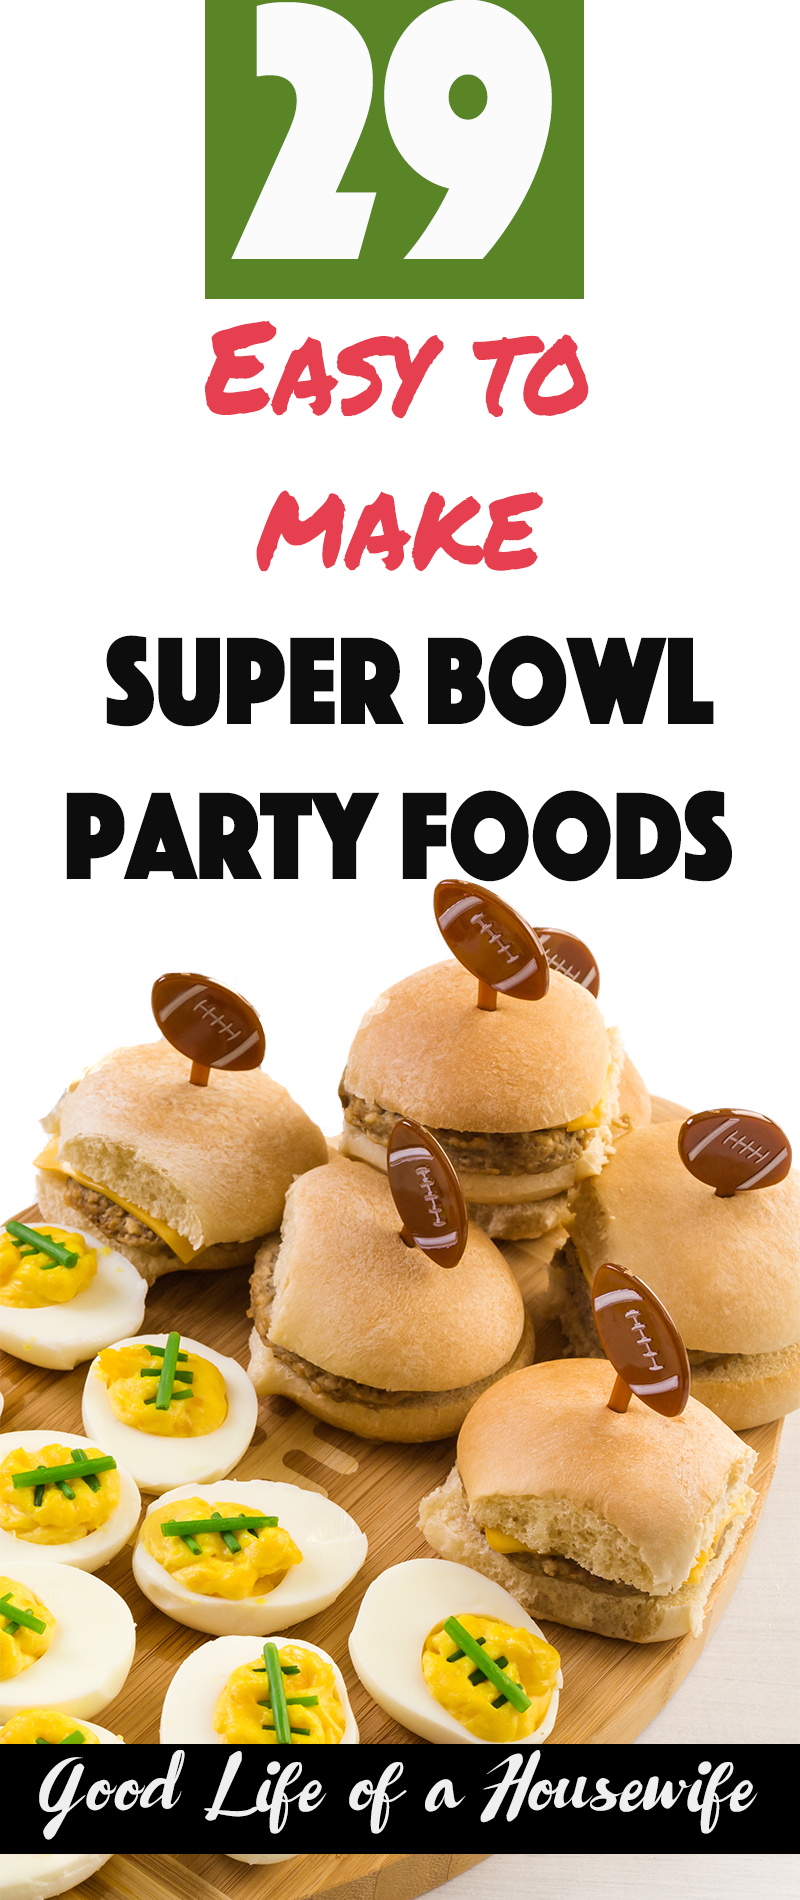 Super Bowl Parties are all about finger foods, dips and having fun. Here are 29 recipes for hosting a Super Bowl party or brining a dish.